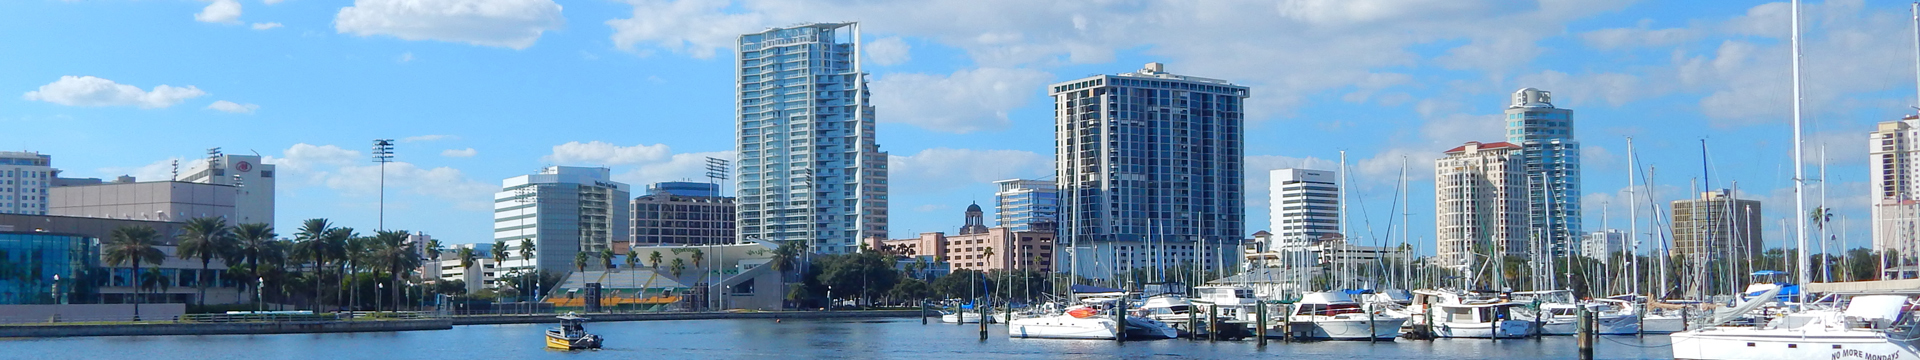 Tampa Bay Commercial Real Estate